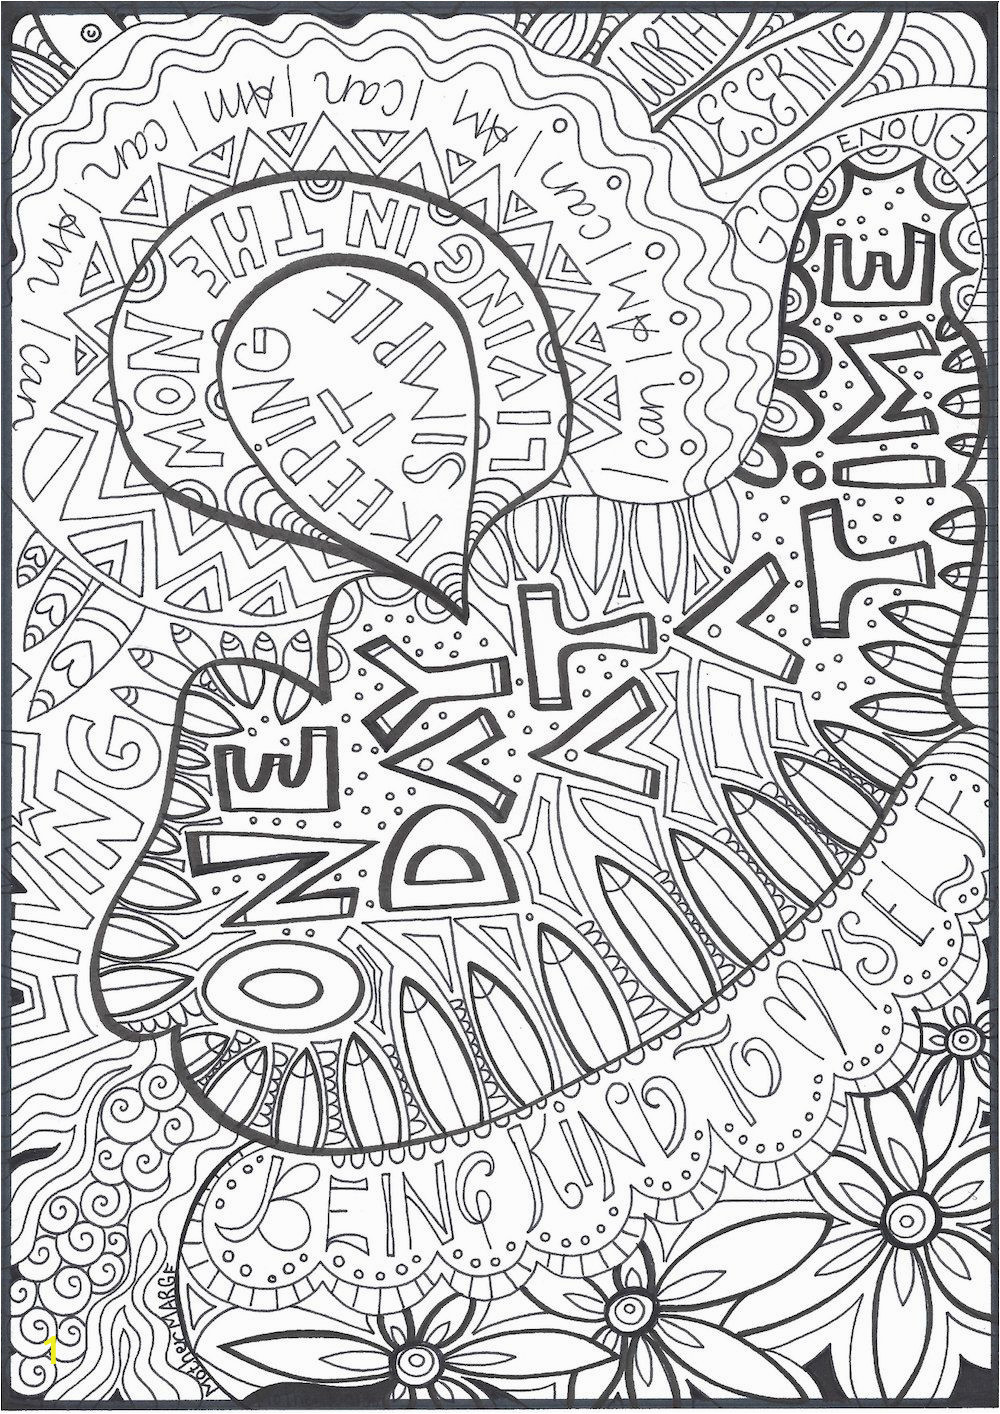 Inspirational Quotes Coloring Pages for Adults E Day at A Time Coloring Page Adult Coloring